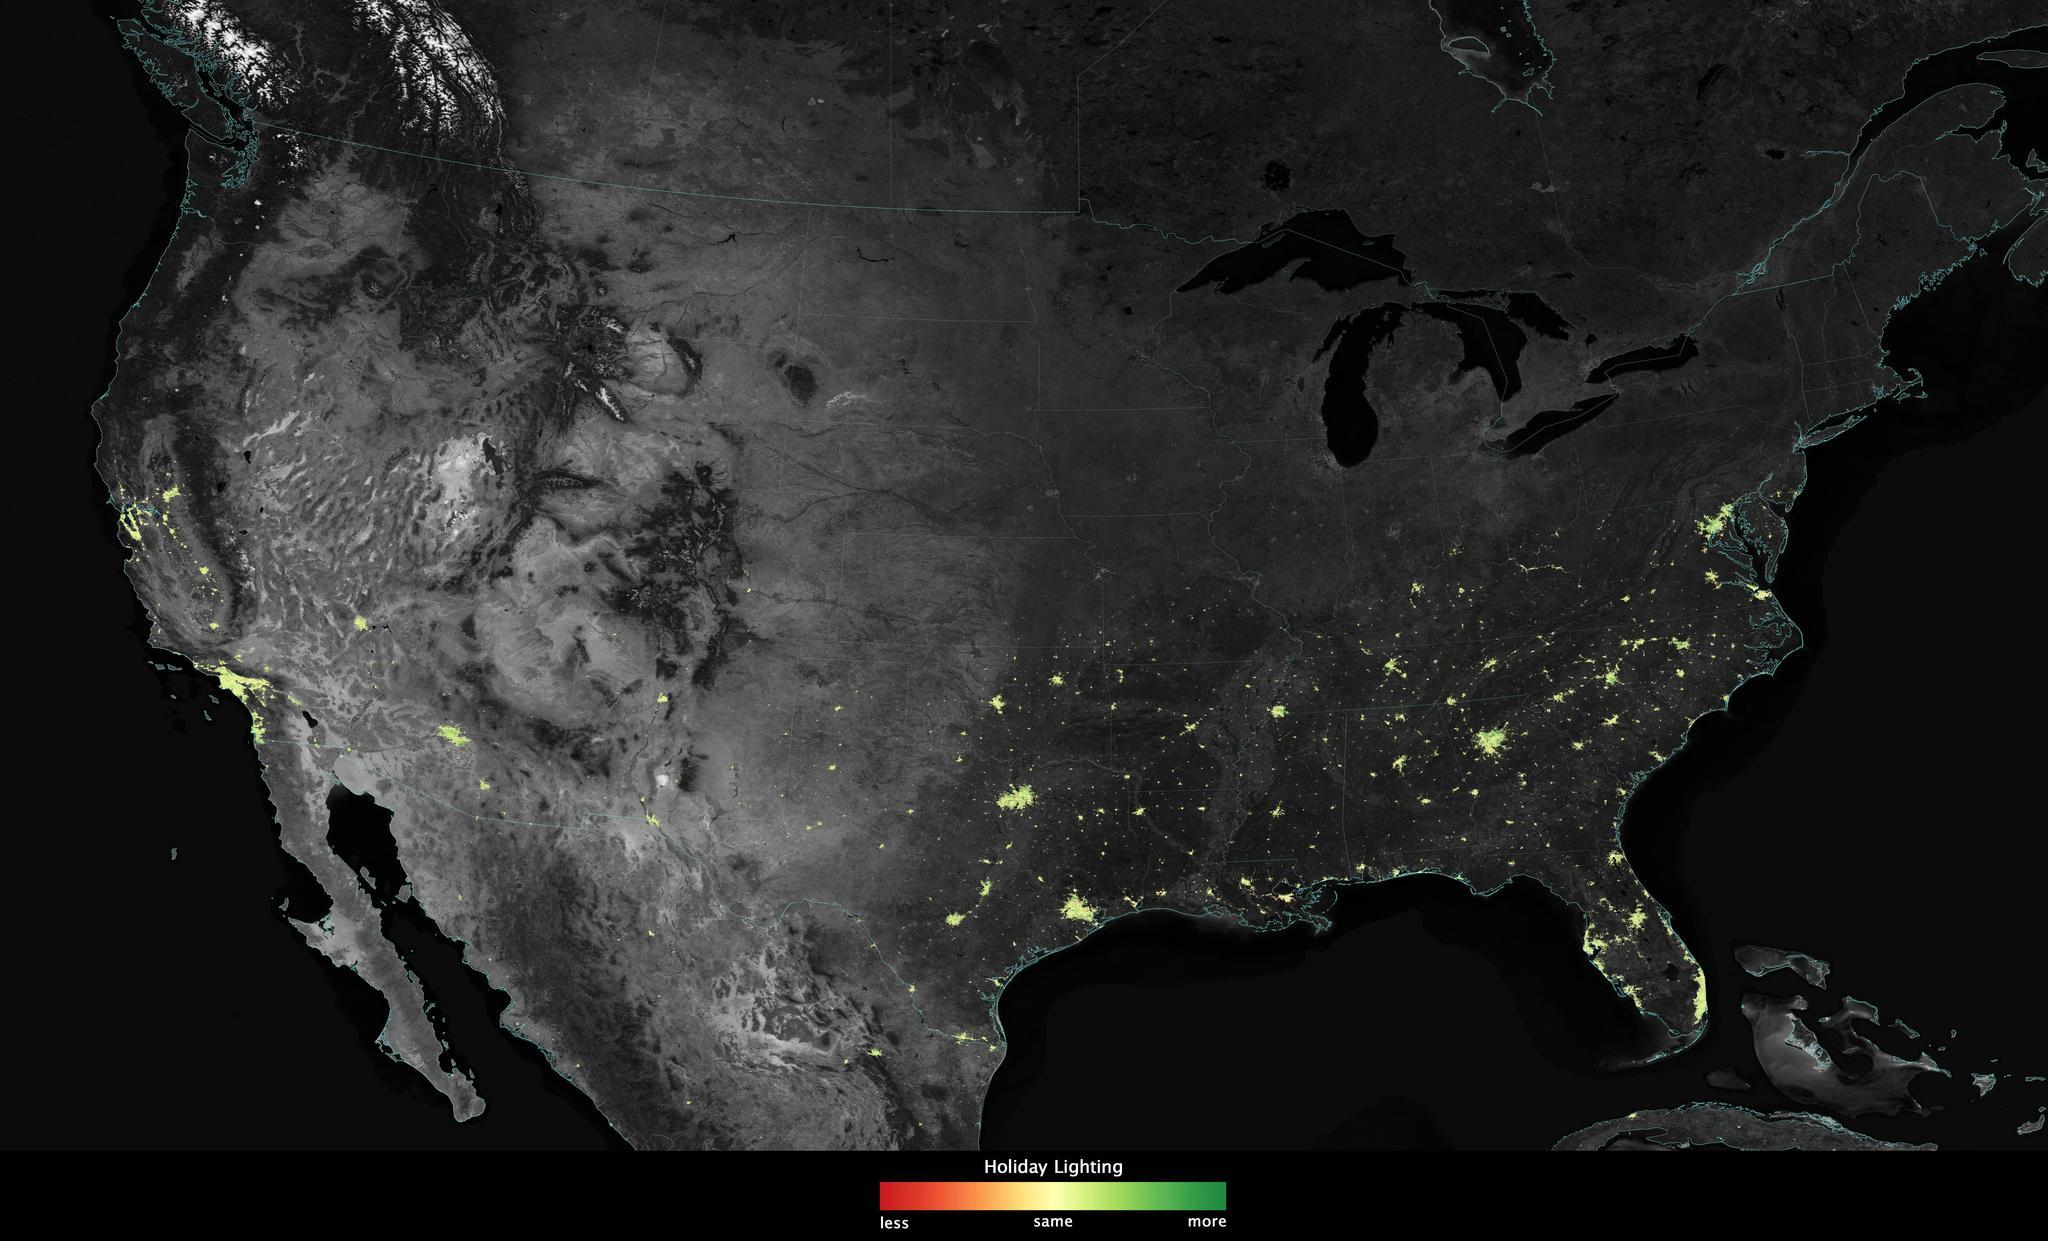 U.S. satellite spies holiday lights from space